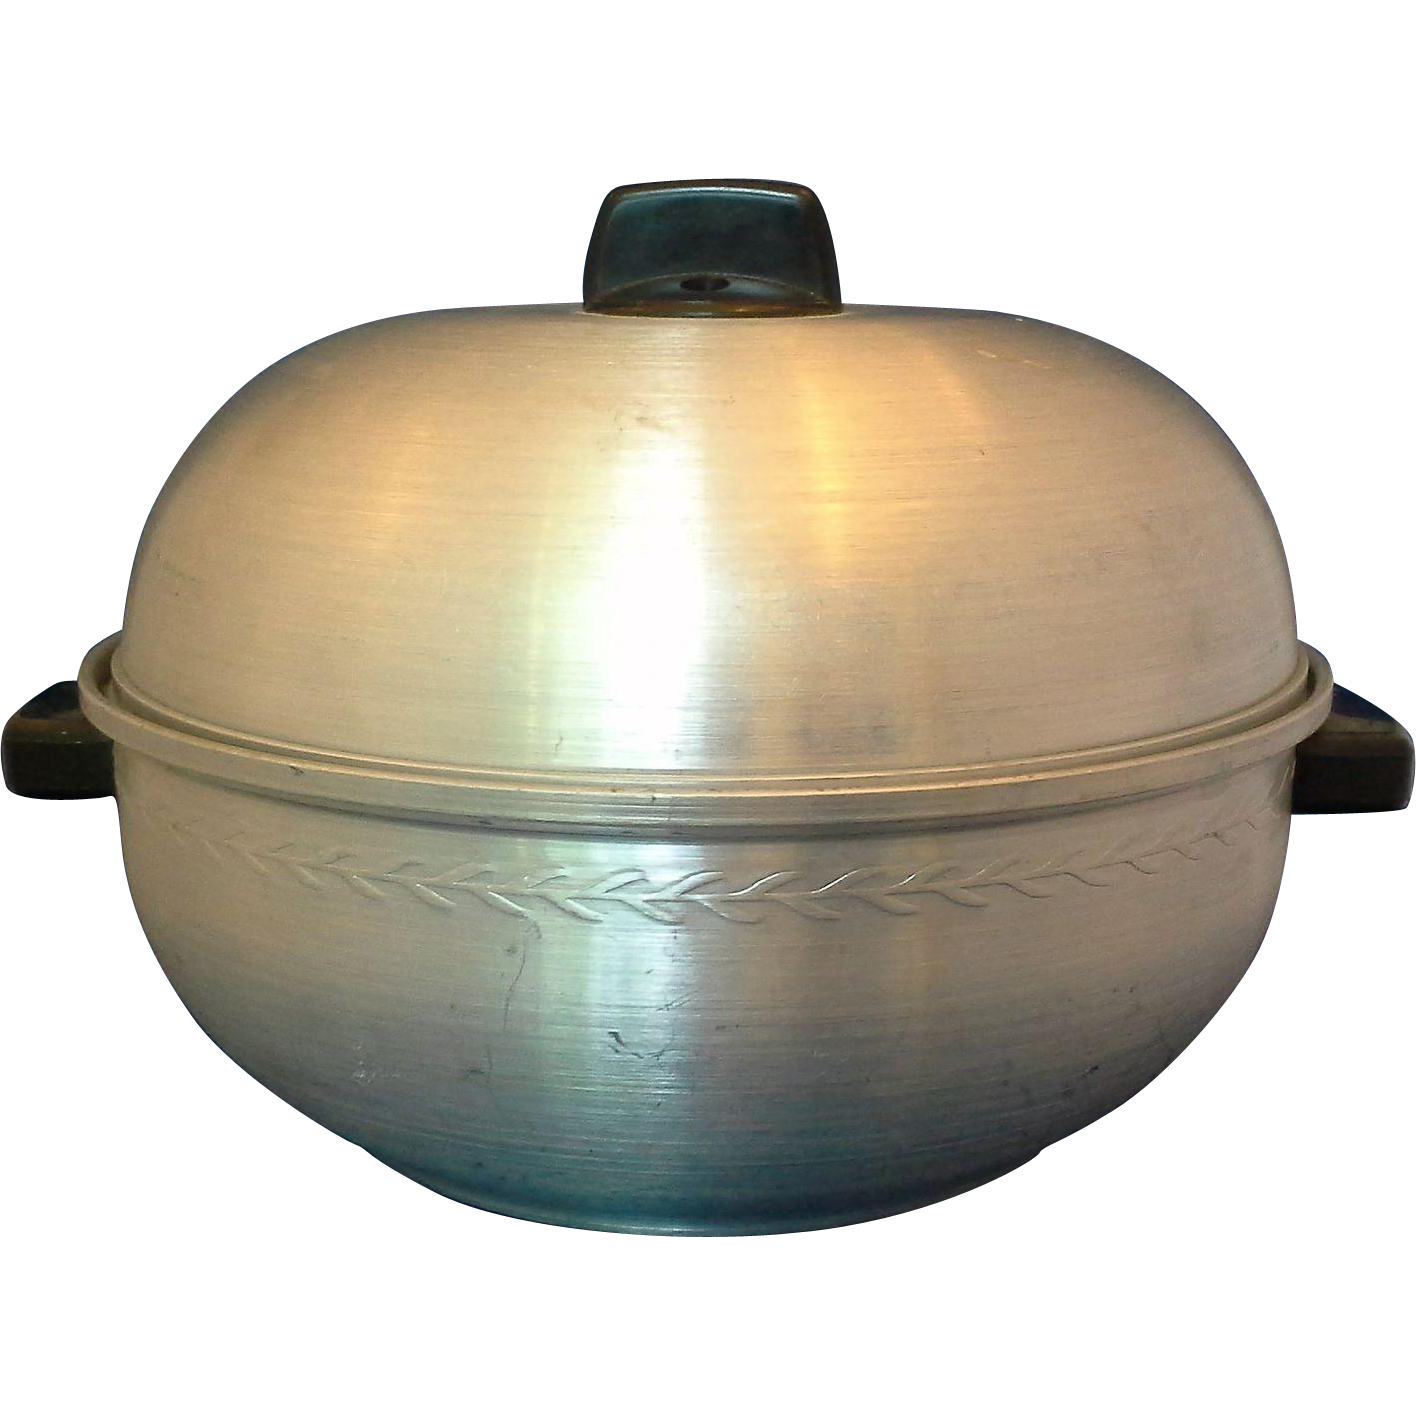 West Bend Spun Aluminum Bun Warmer 1950s